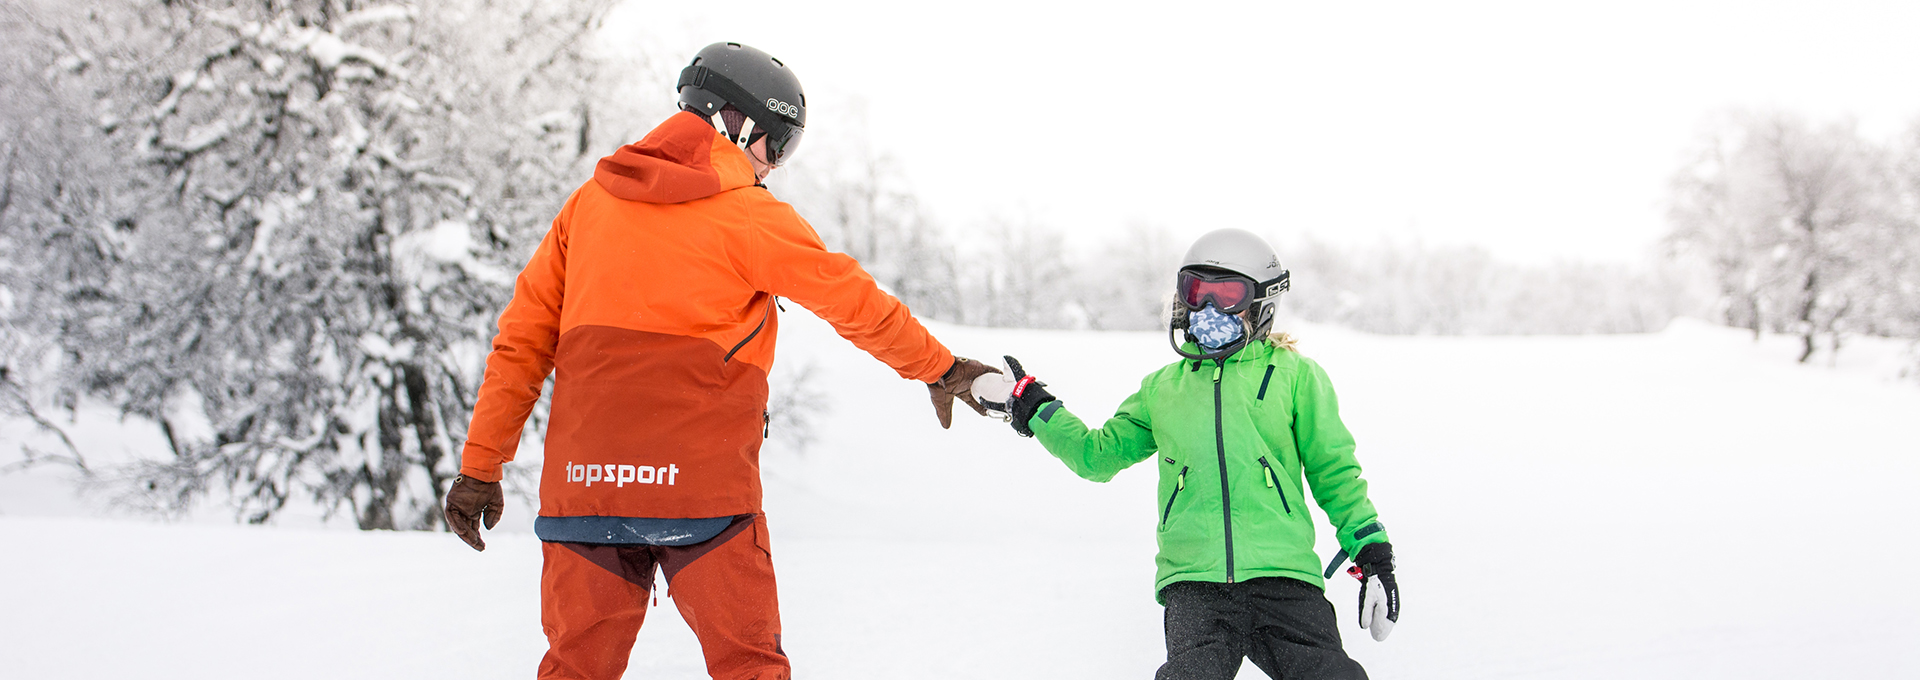 Children at snowboarding lesson